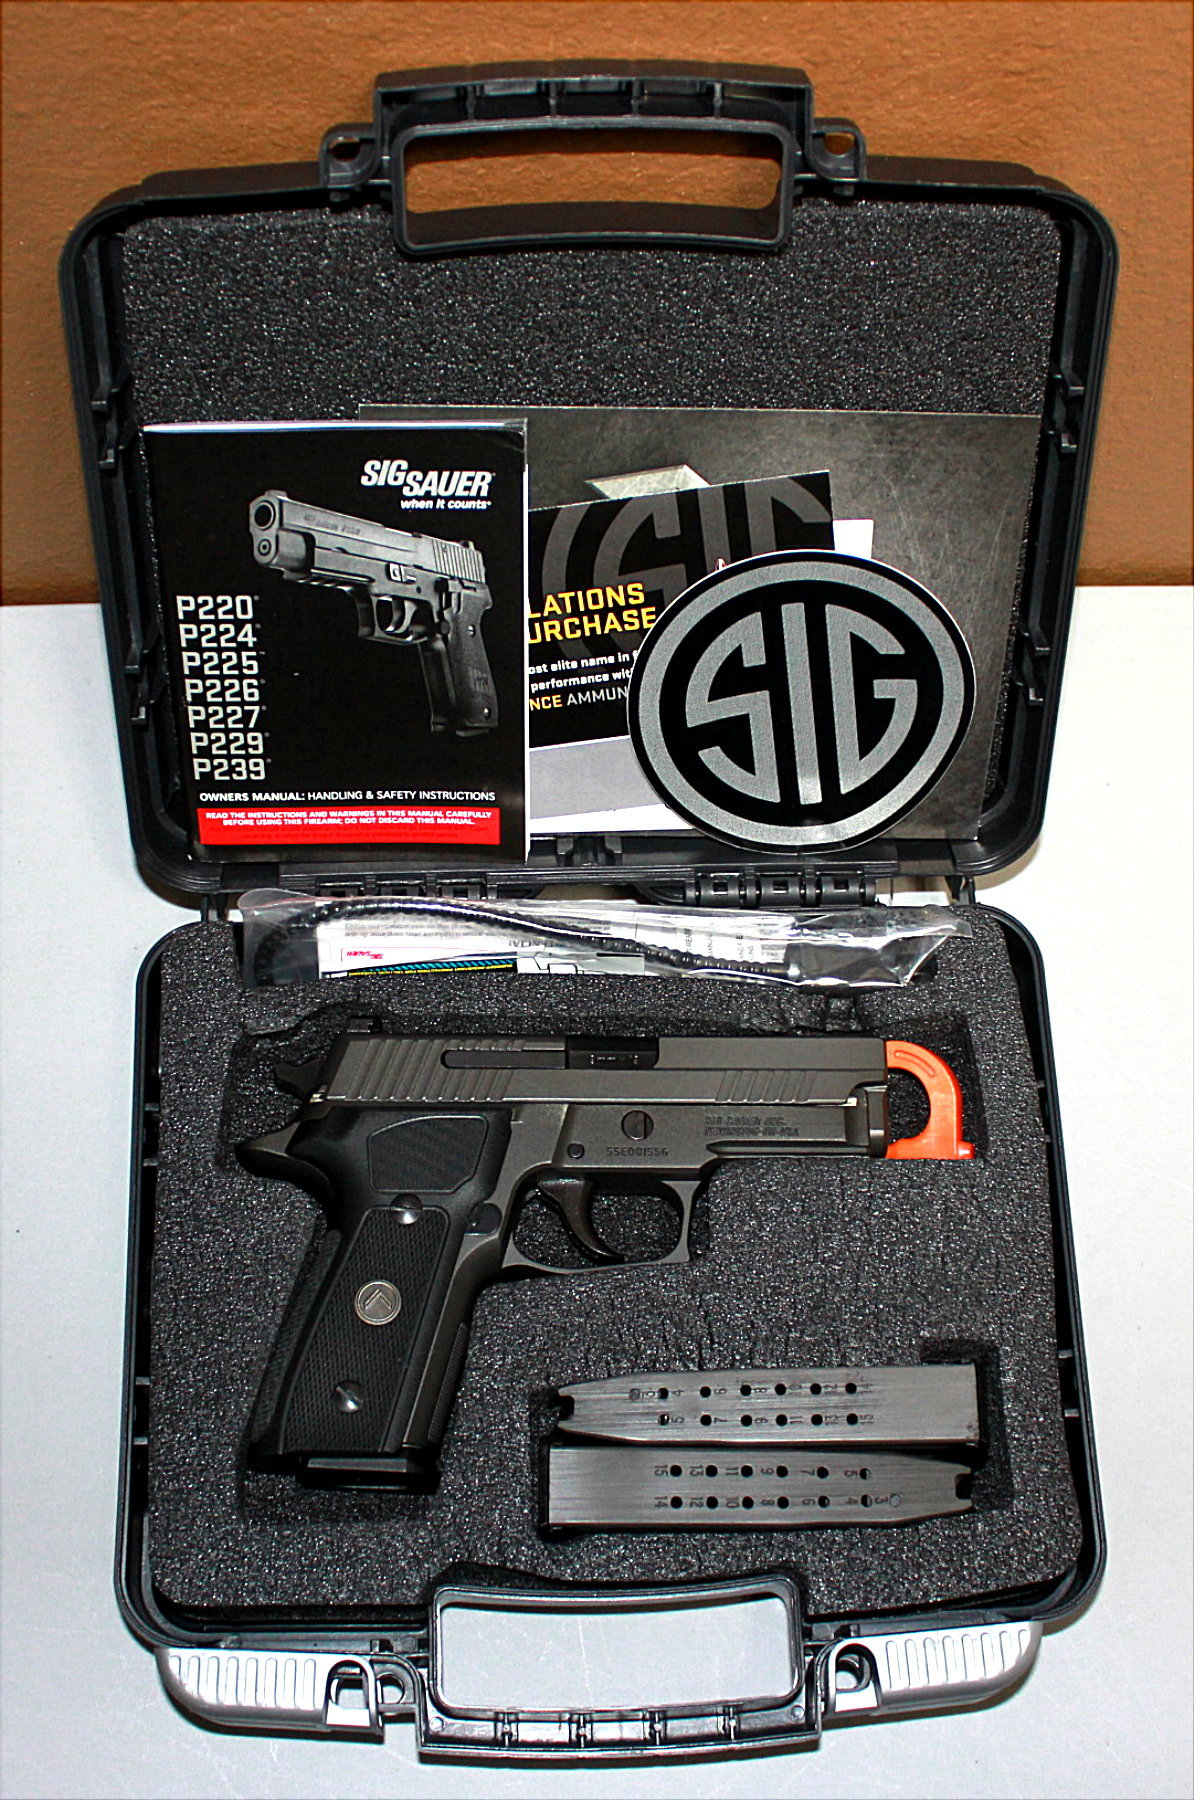 SIG SAUER P229 LEGION 9MM SEMI AUTOMATIC PISTOL - NICE!